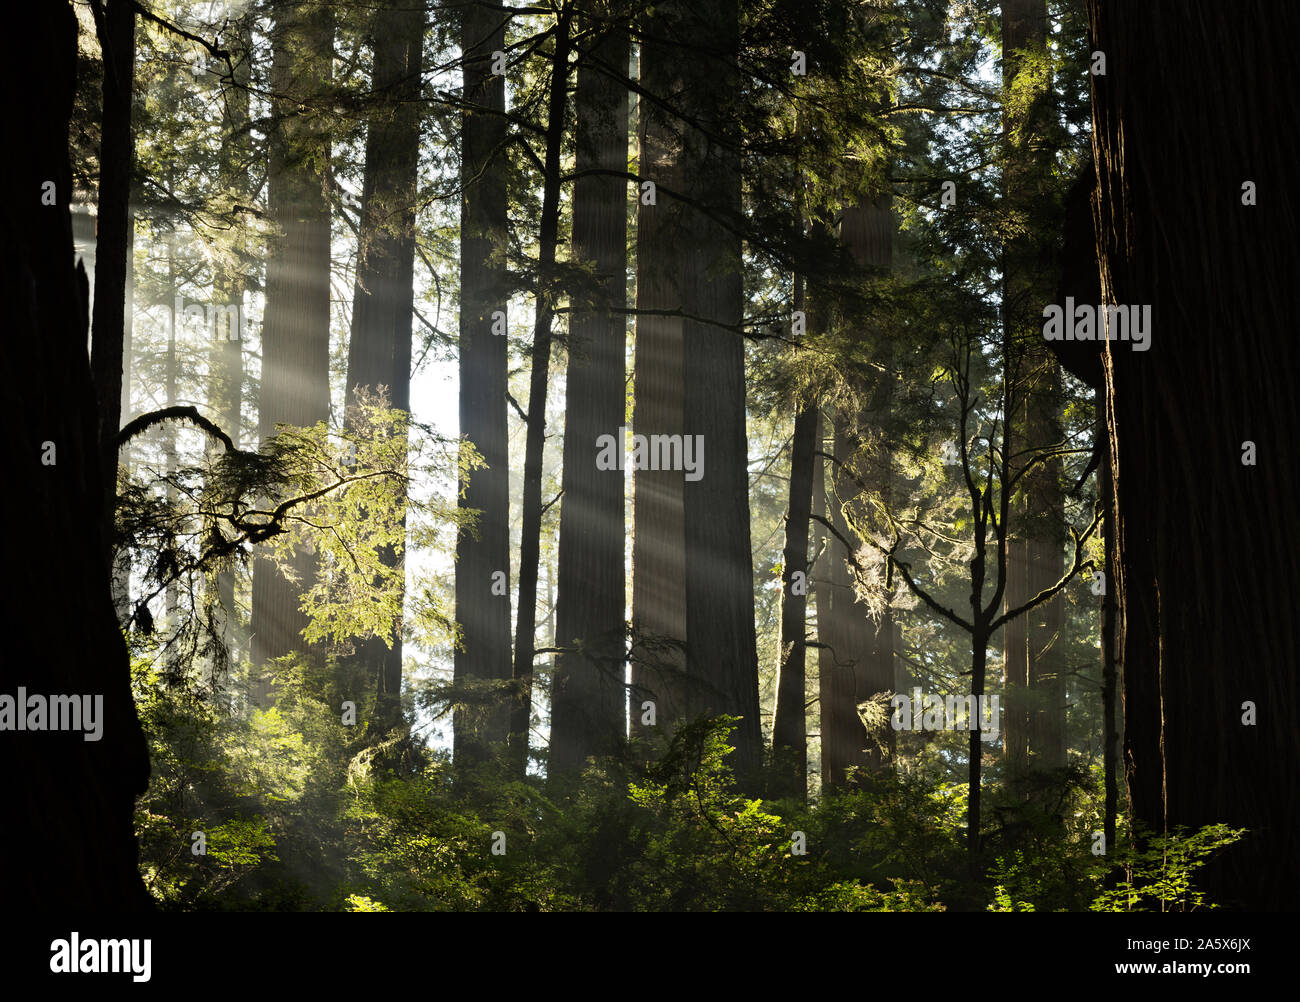 CA03767-00...CALIFORNIA - Sunlight breaking through a layer of fog in the redwood forest along the Boy Scout Trail in Jedediah Smith Redwoods SP. Stock Photo